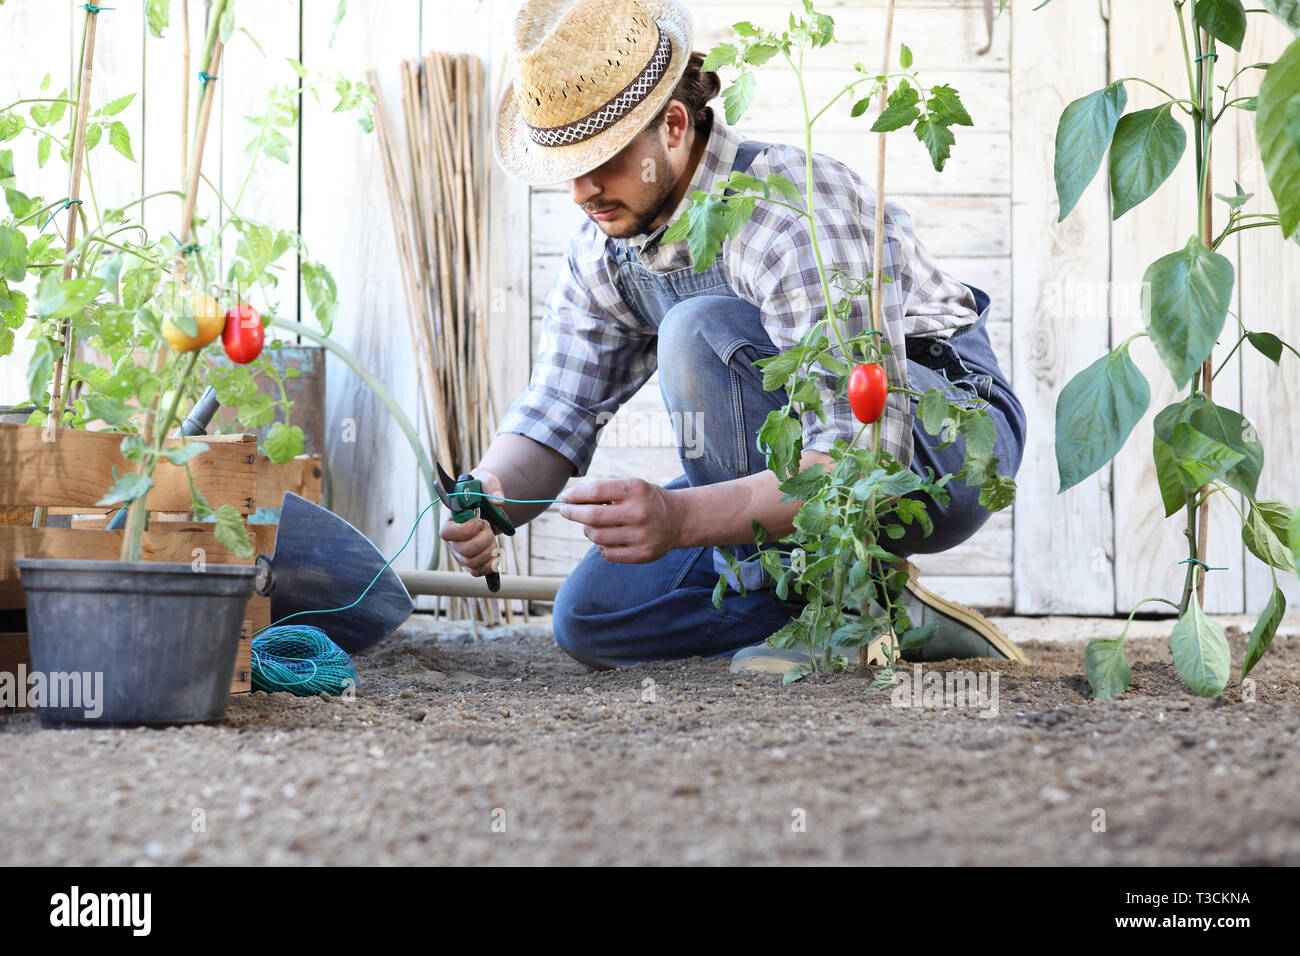 Man Working In The Vegetable Garden Tie Up The Tomato Plants Take